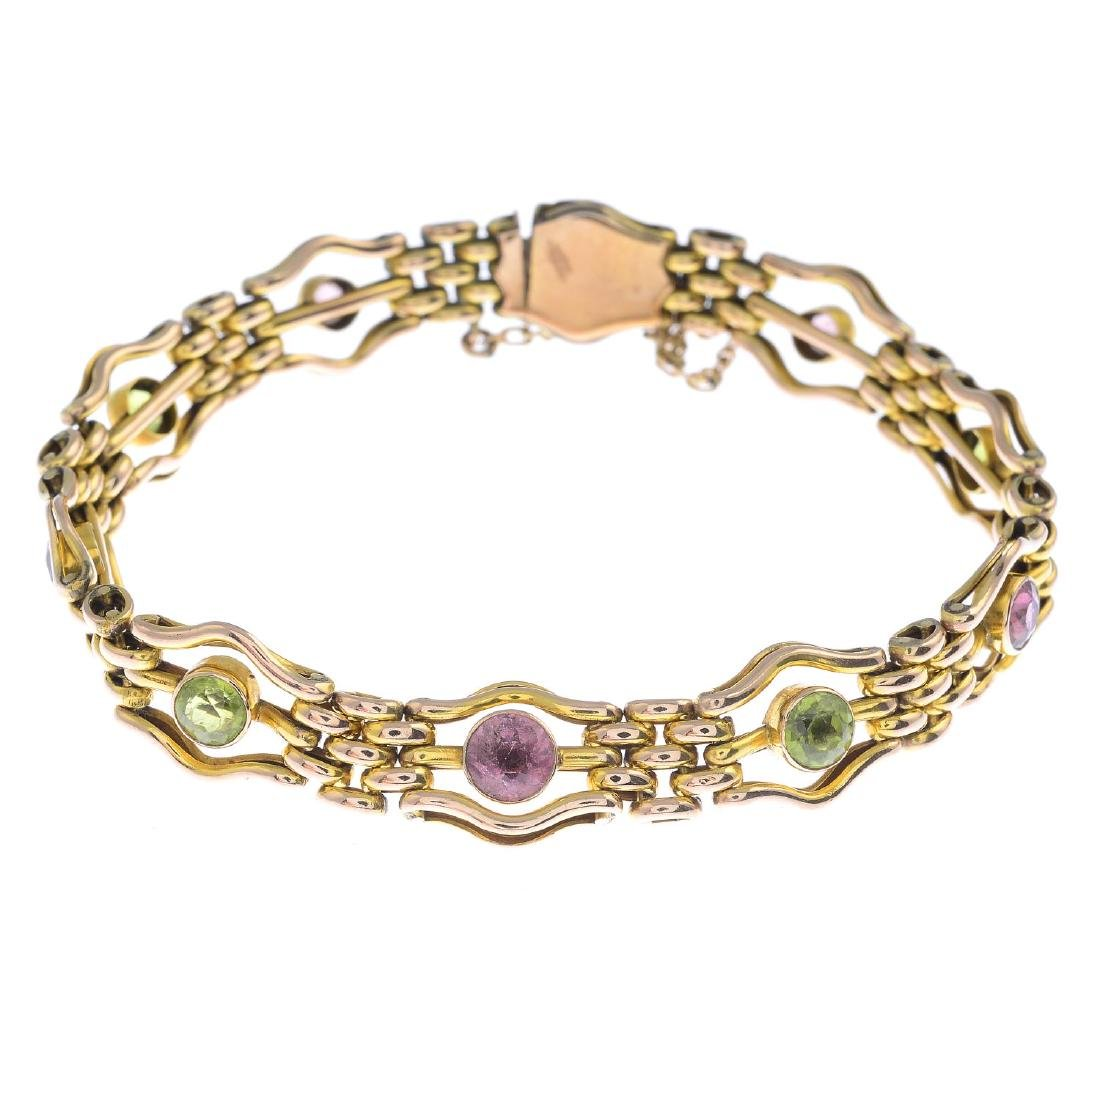 An amethyst and peridot gate bracelet. Designed as a